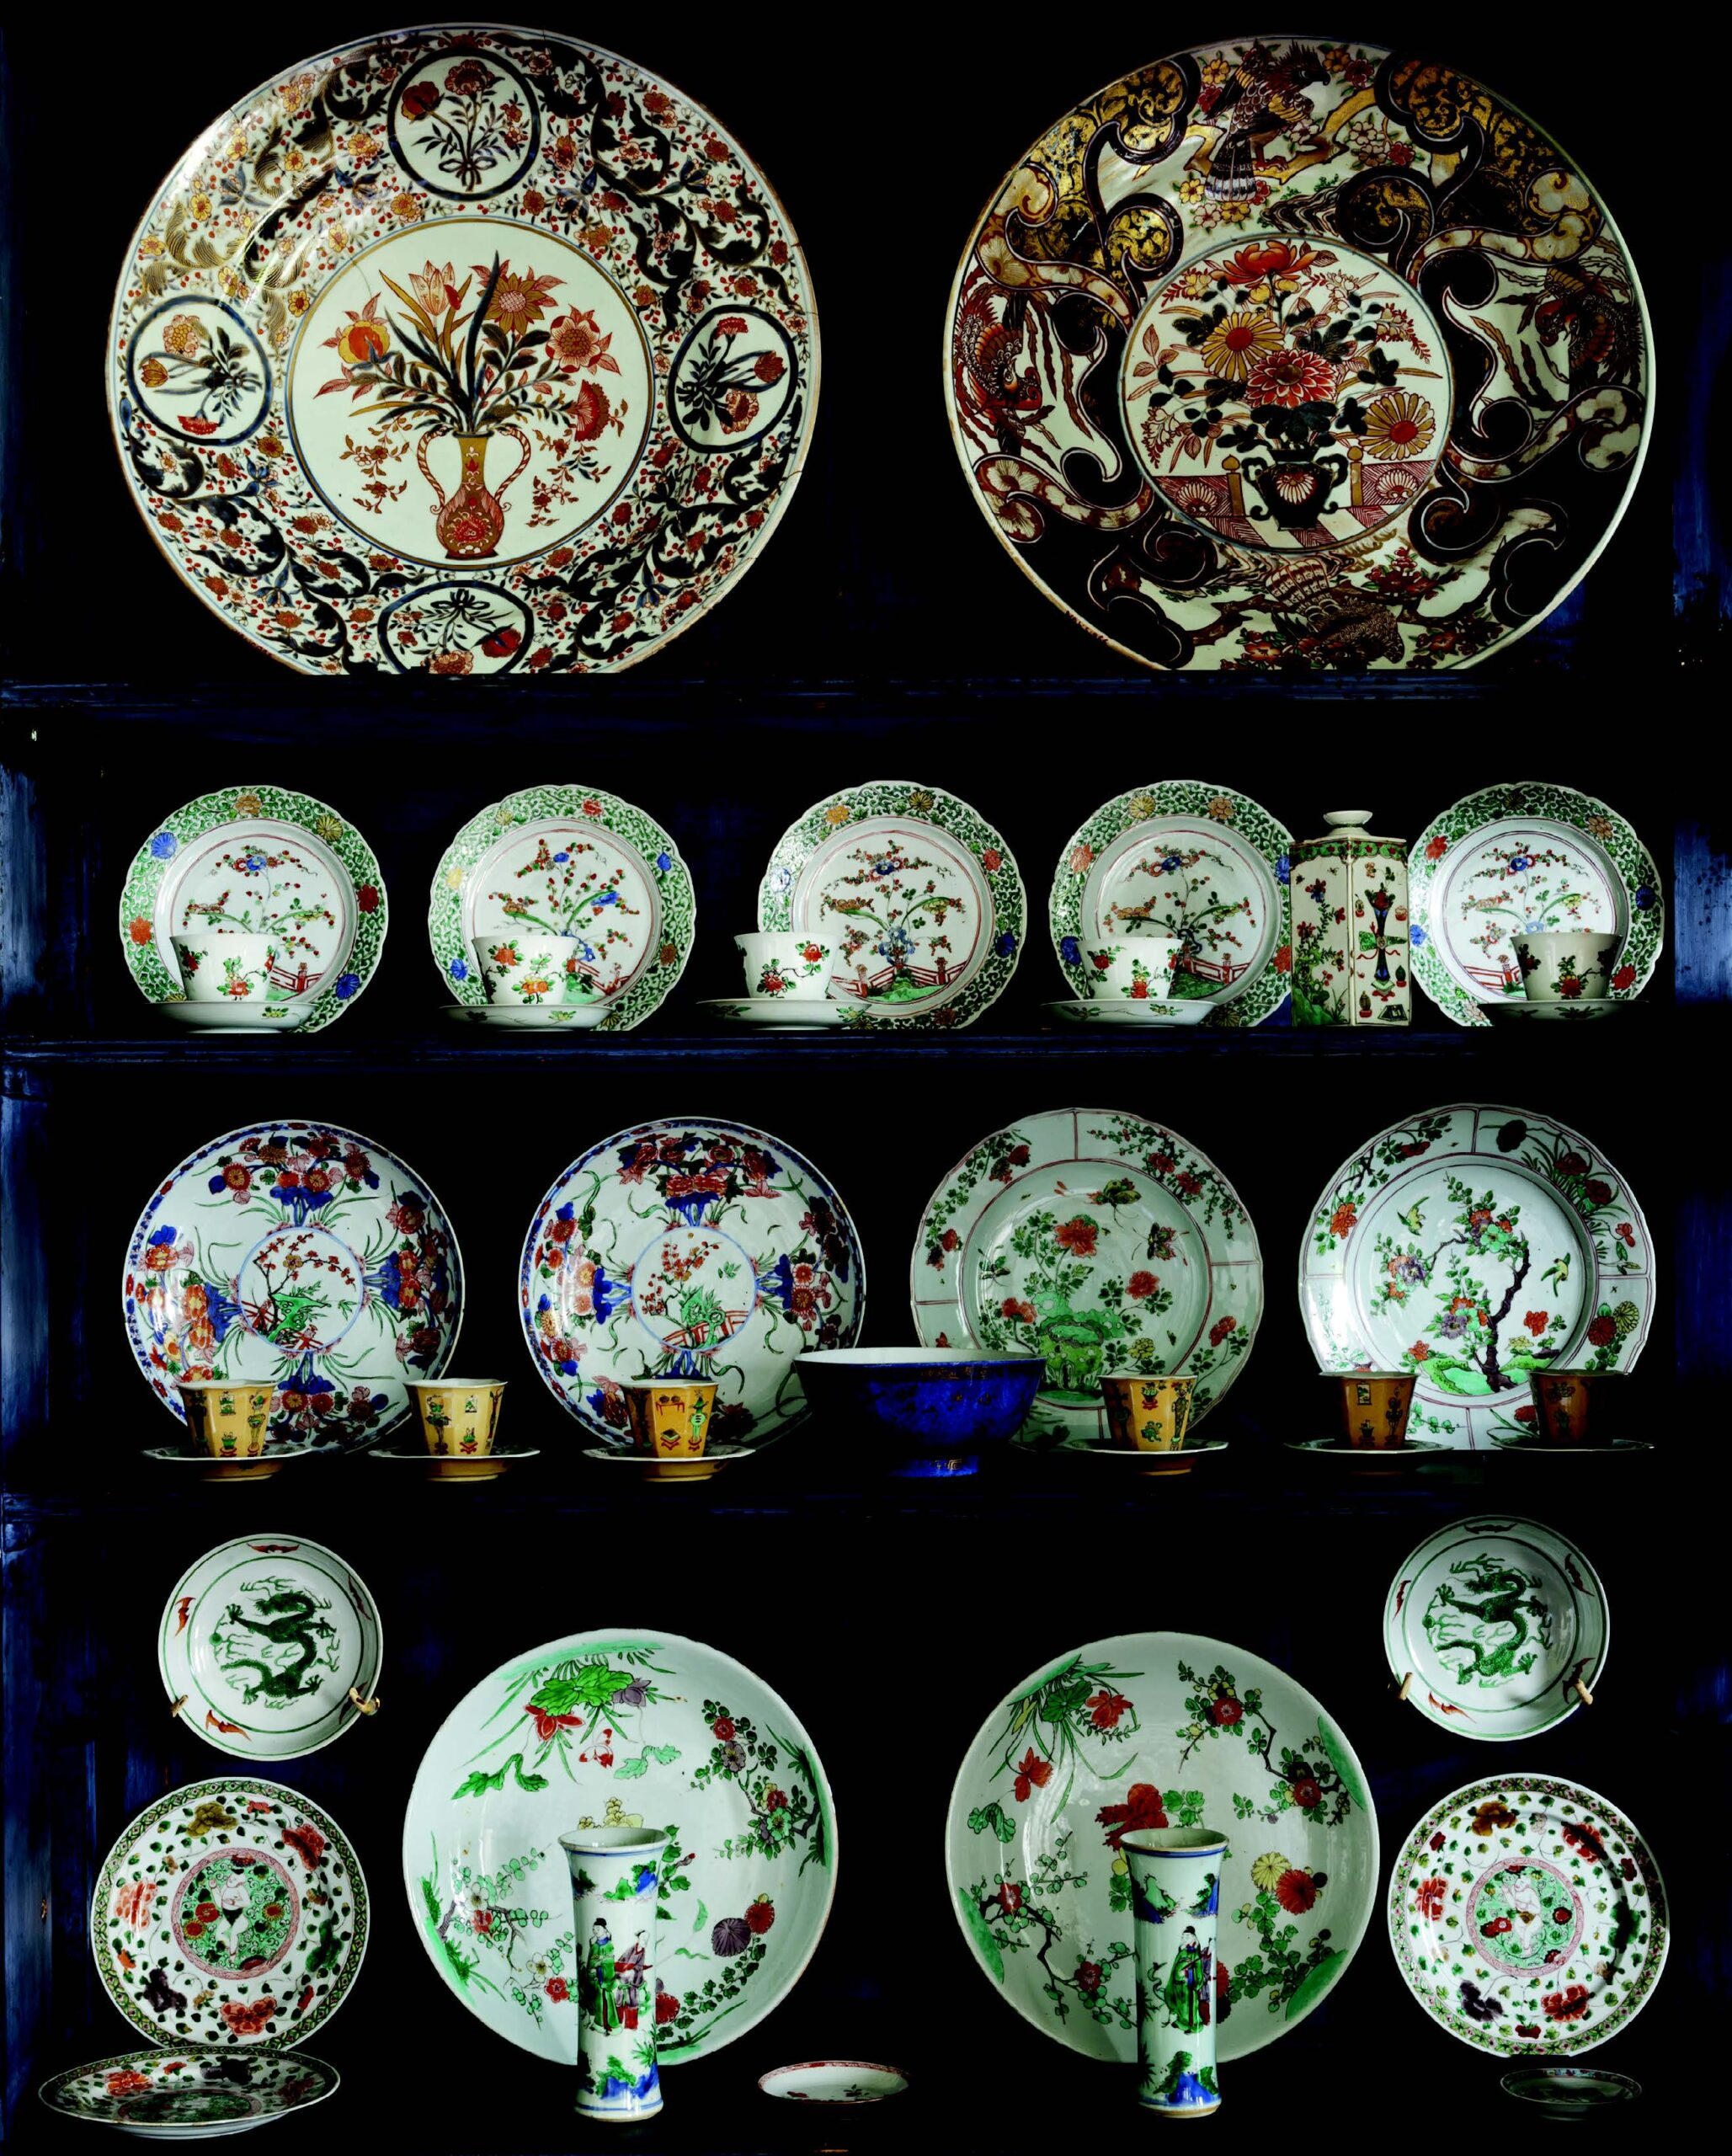 Collection of 17th-century Chinese and Japanese porcelain at Wallington, Northumberland